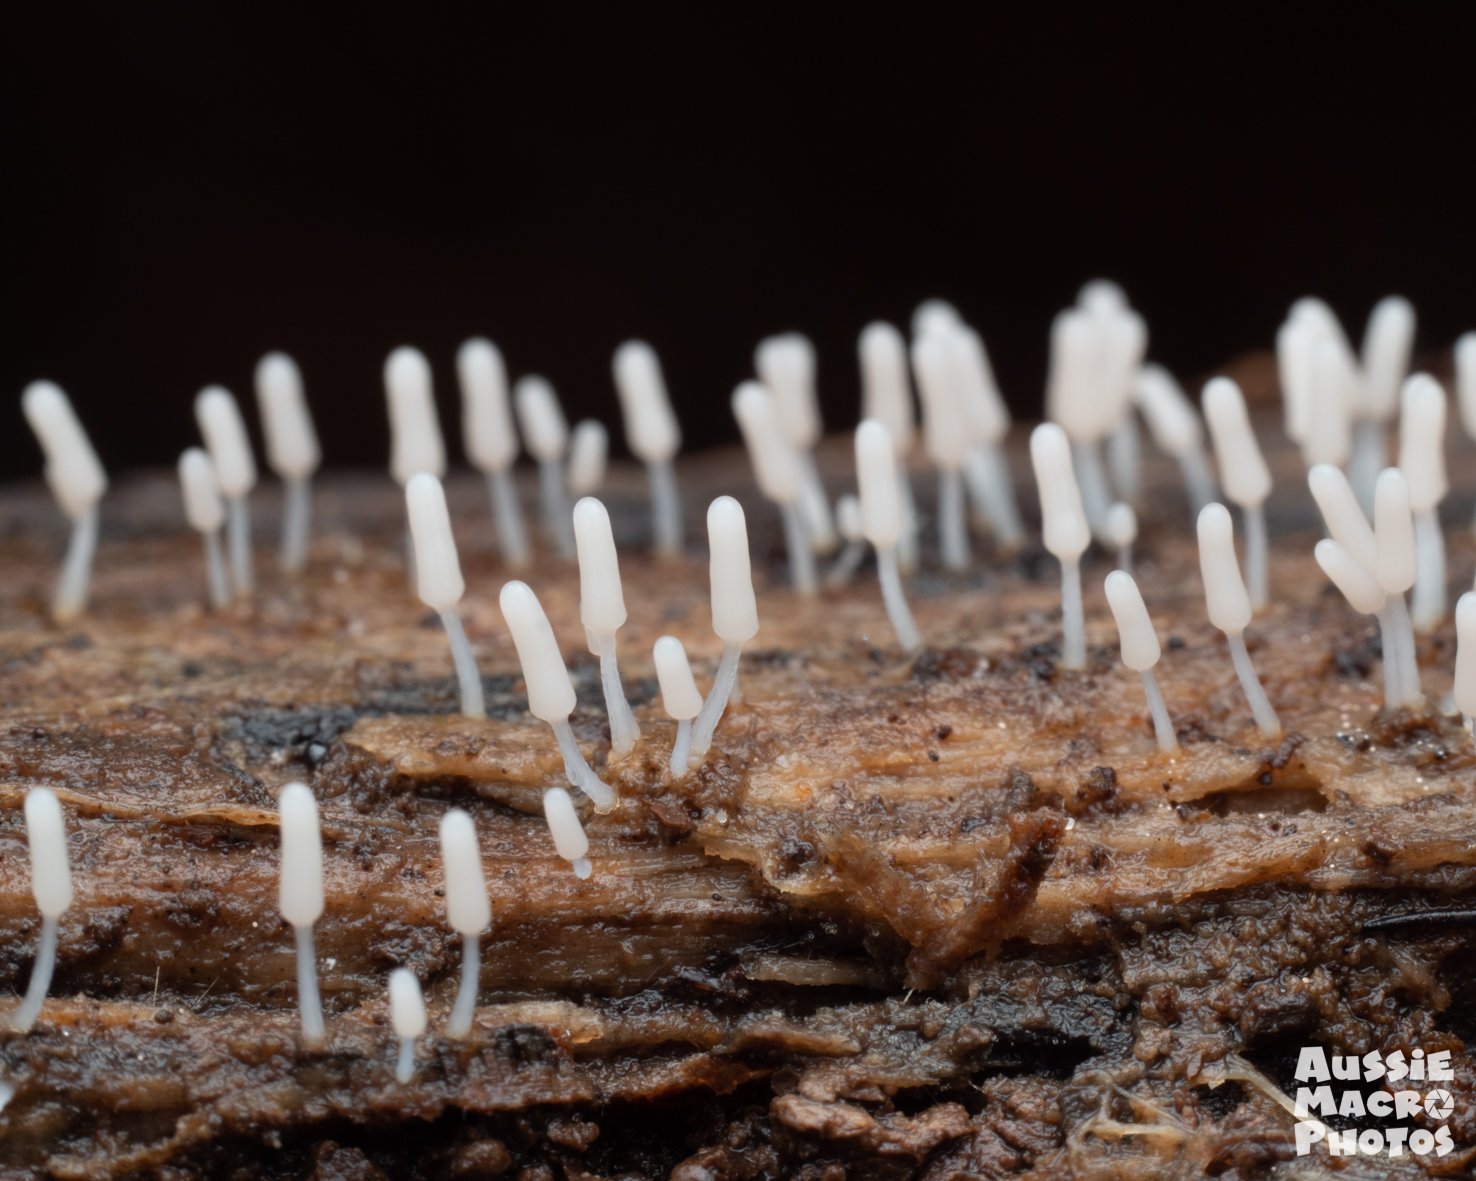 Miniature lifeforms in the shape of batons slime mould Cairns Mushroom Photography